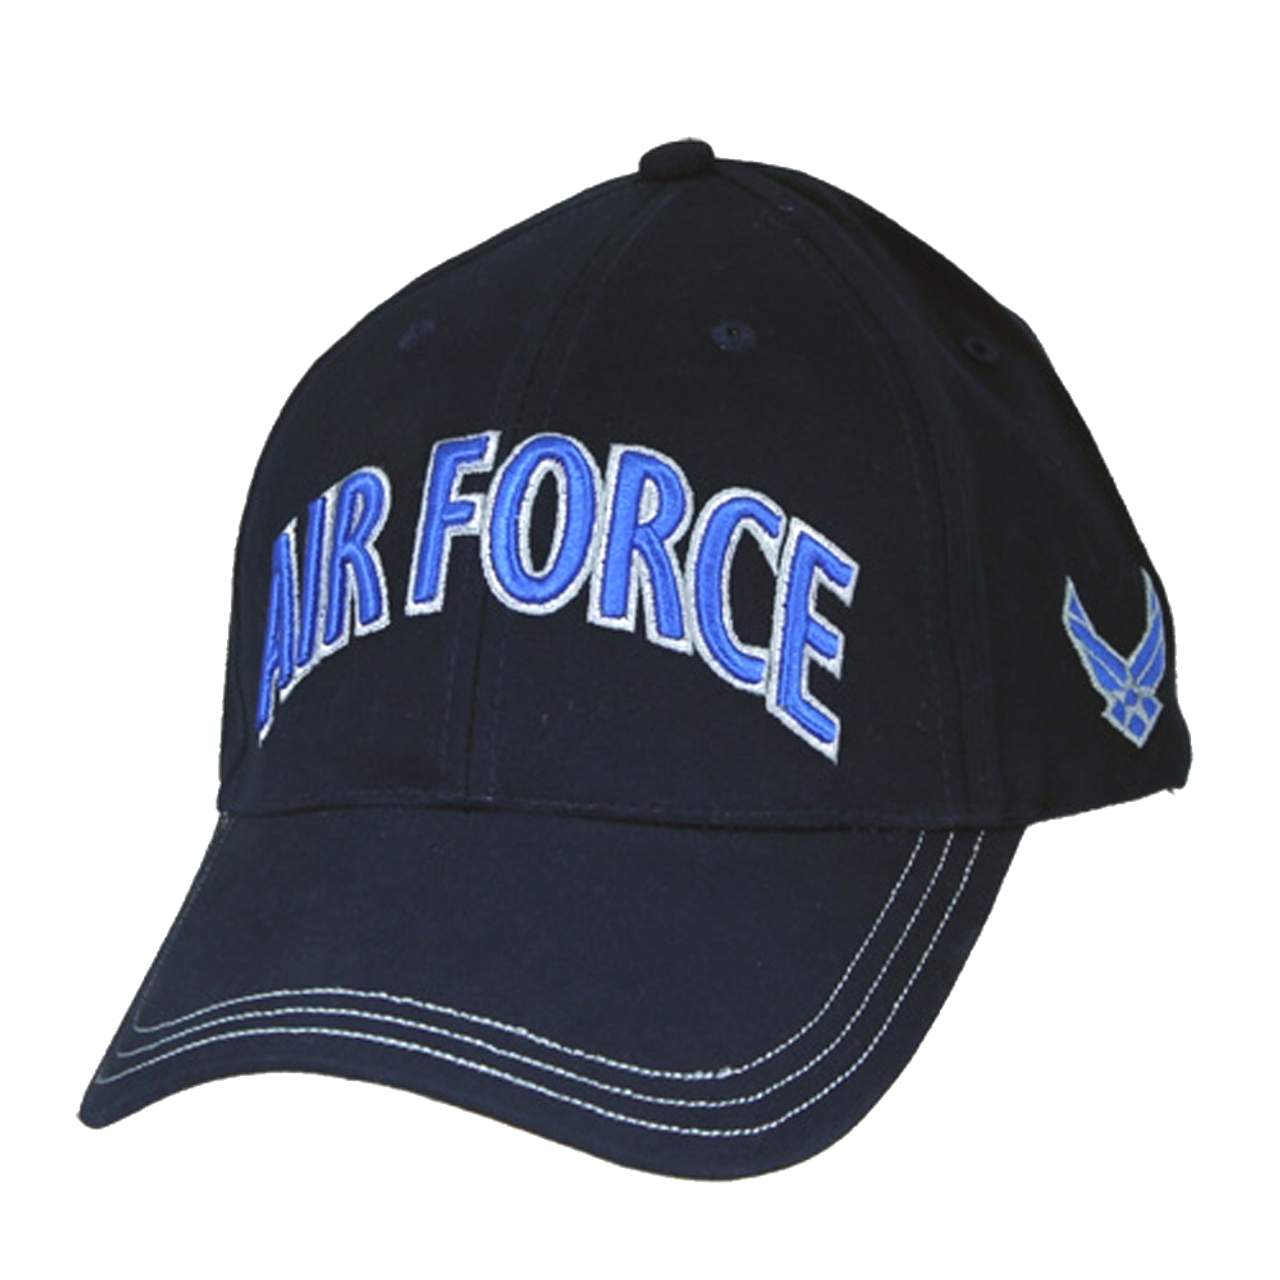 Eagle Crest 6479 - Air Force Cap - Cotton - Dark Navy 3b3086b17b06